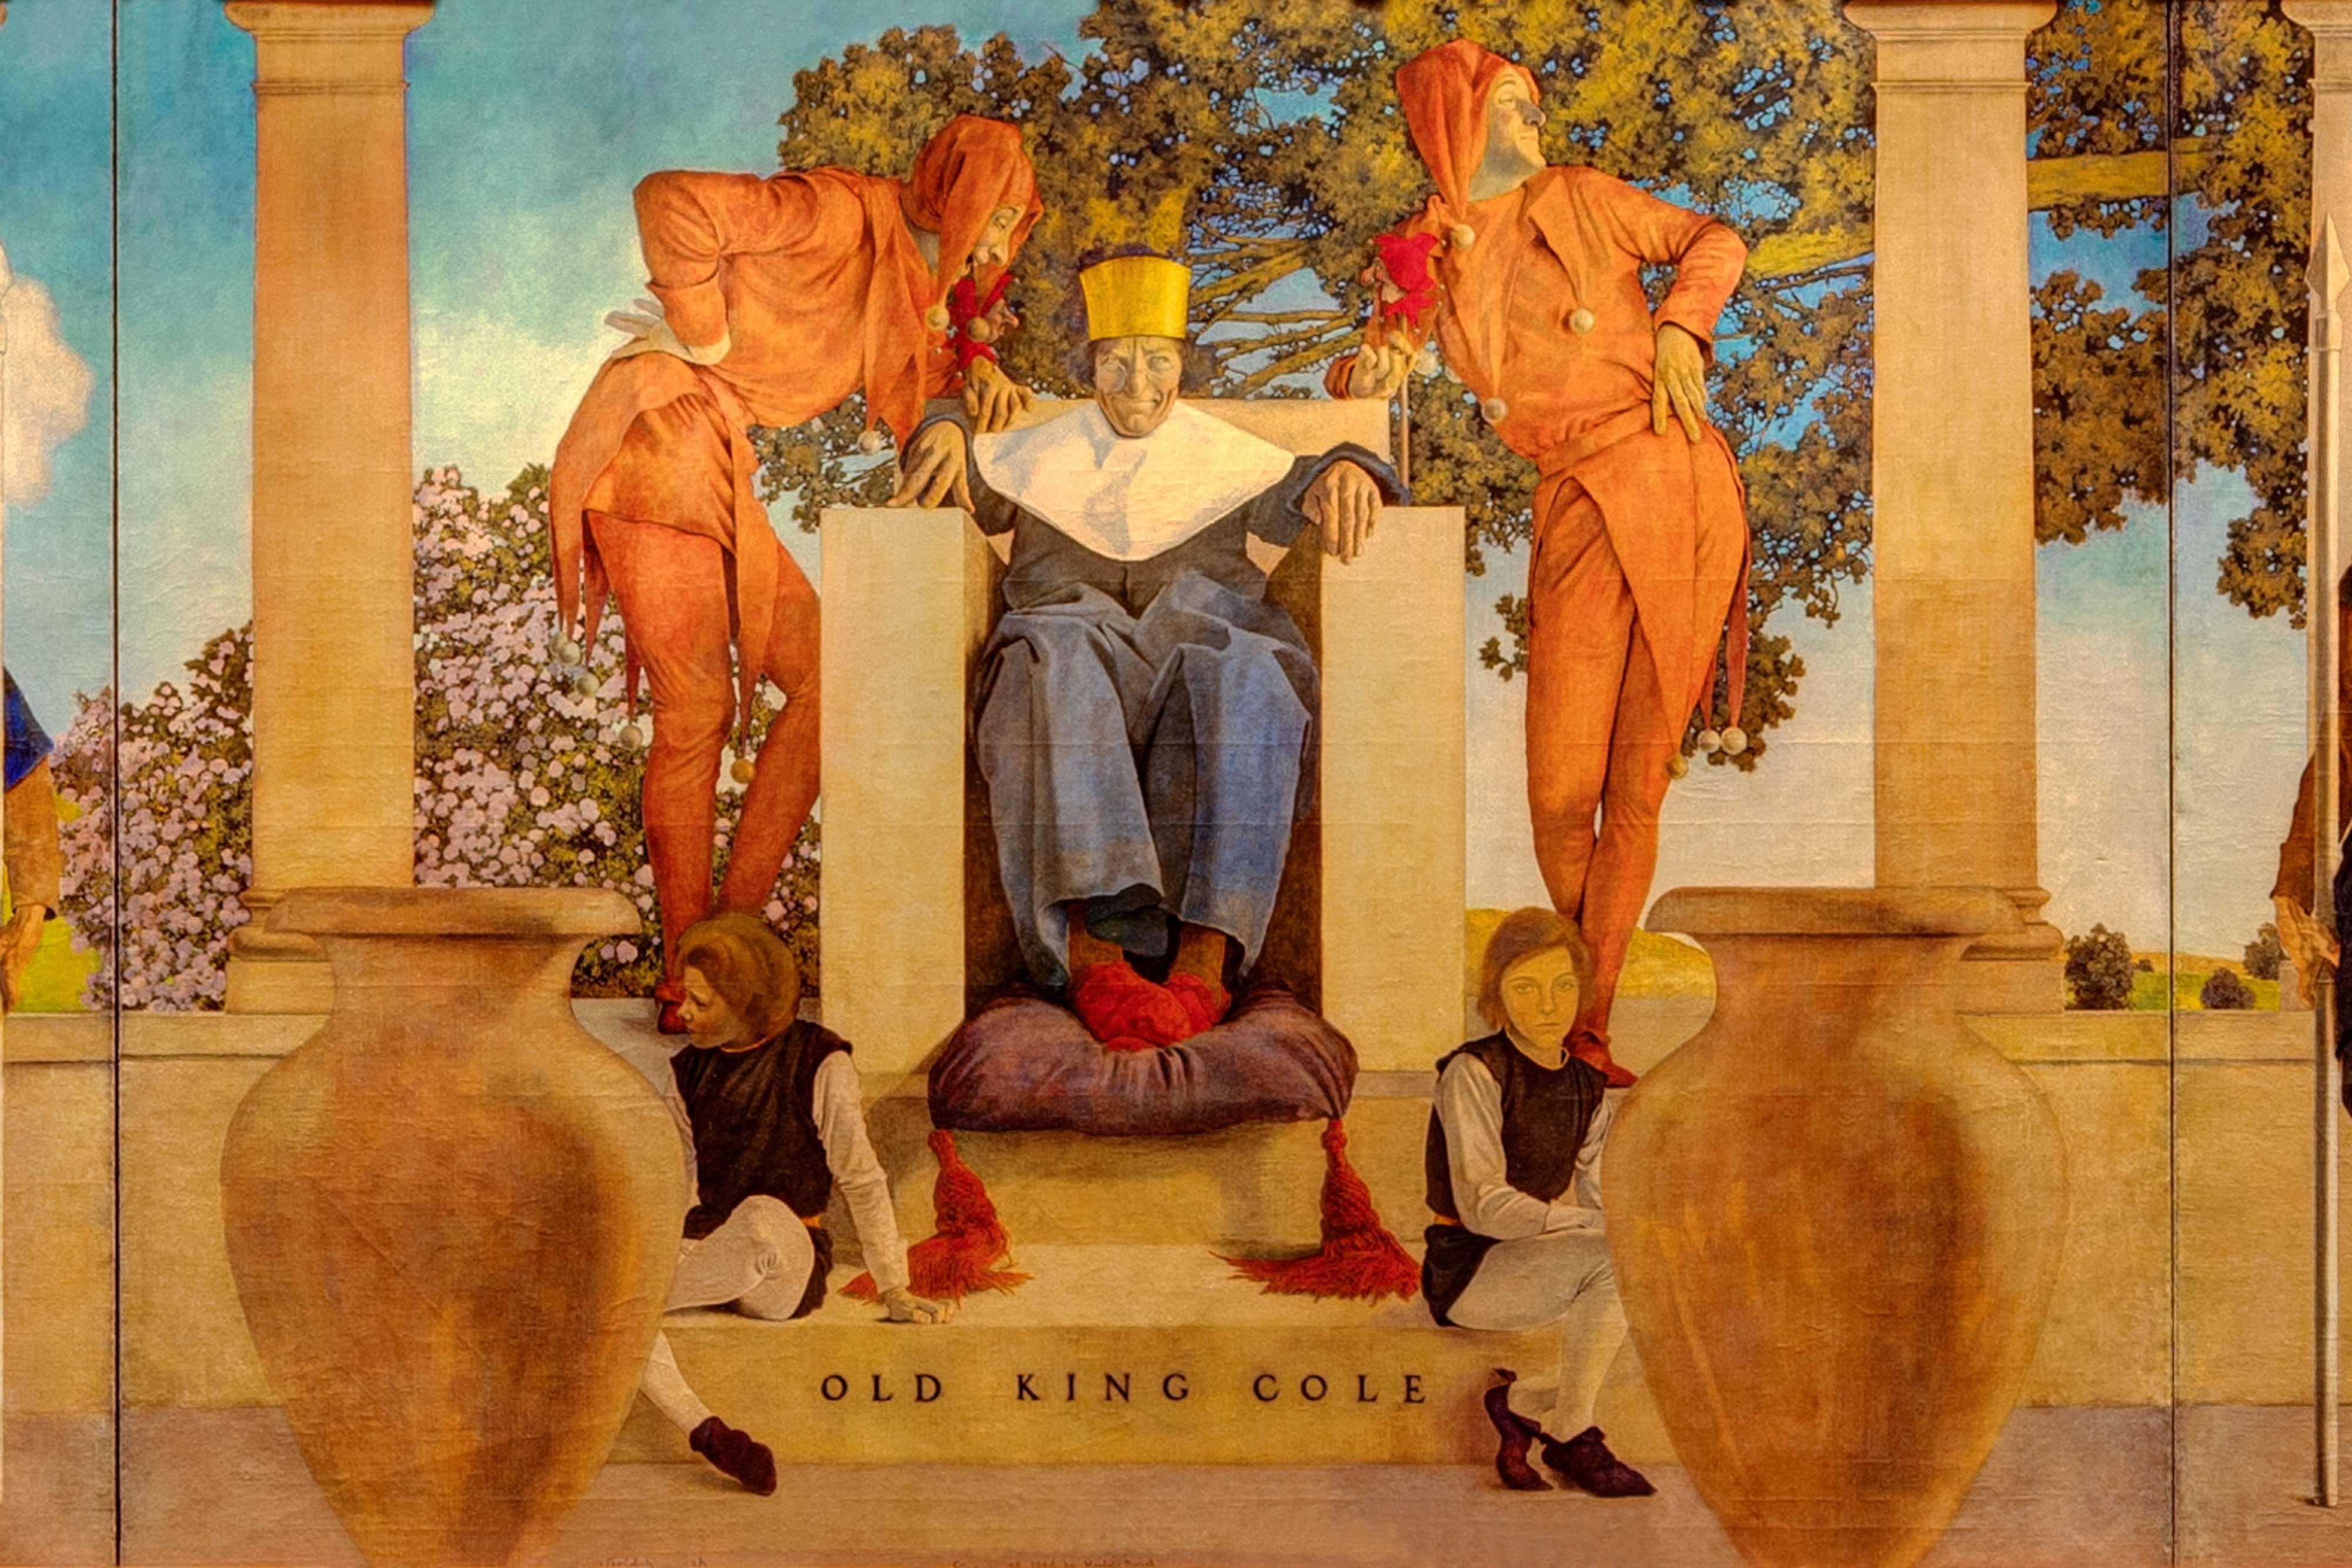 Old King Cole Mural